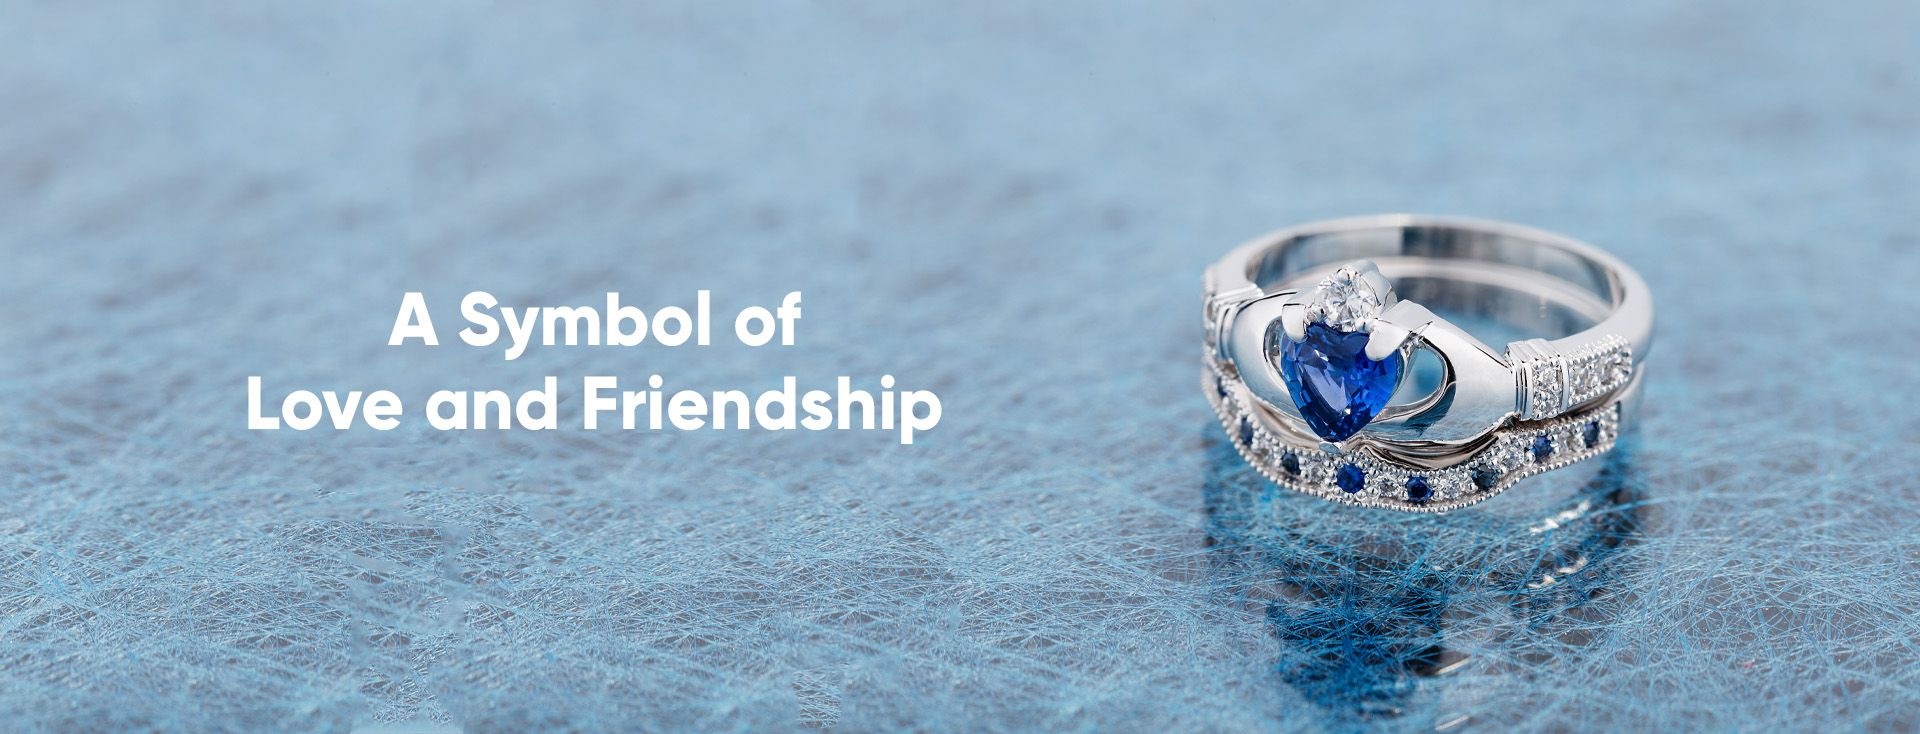 The story behind the famous friendship ring